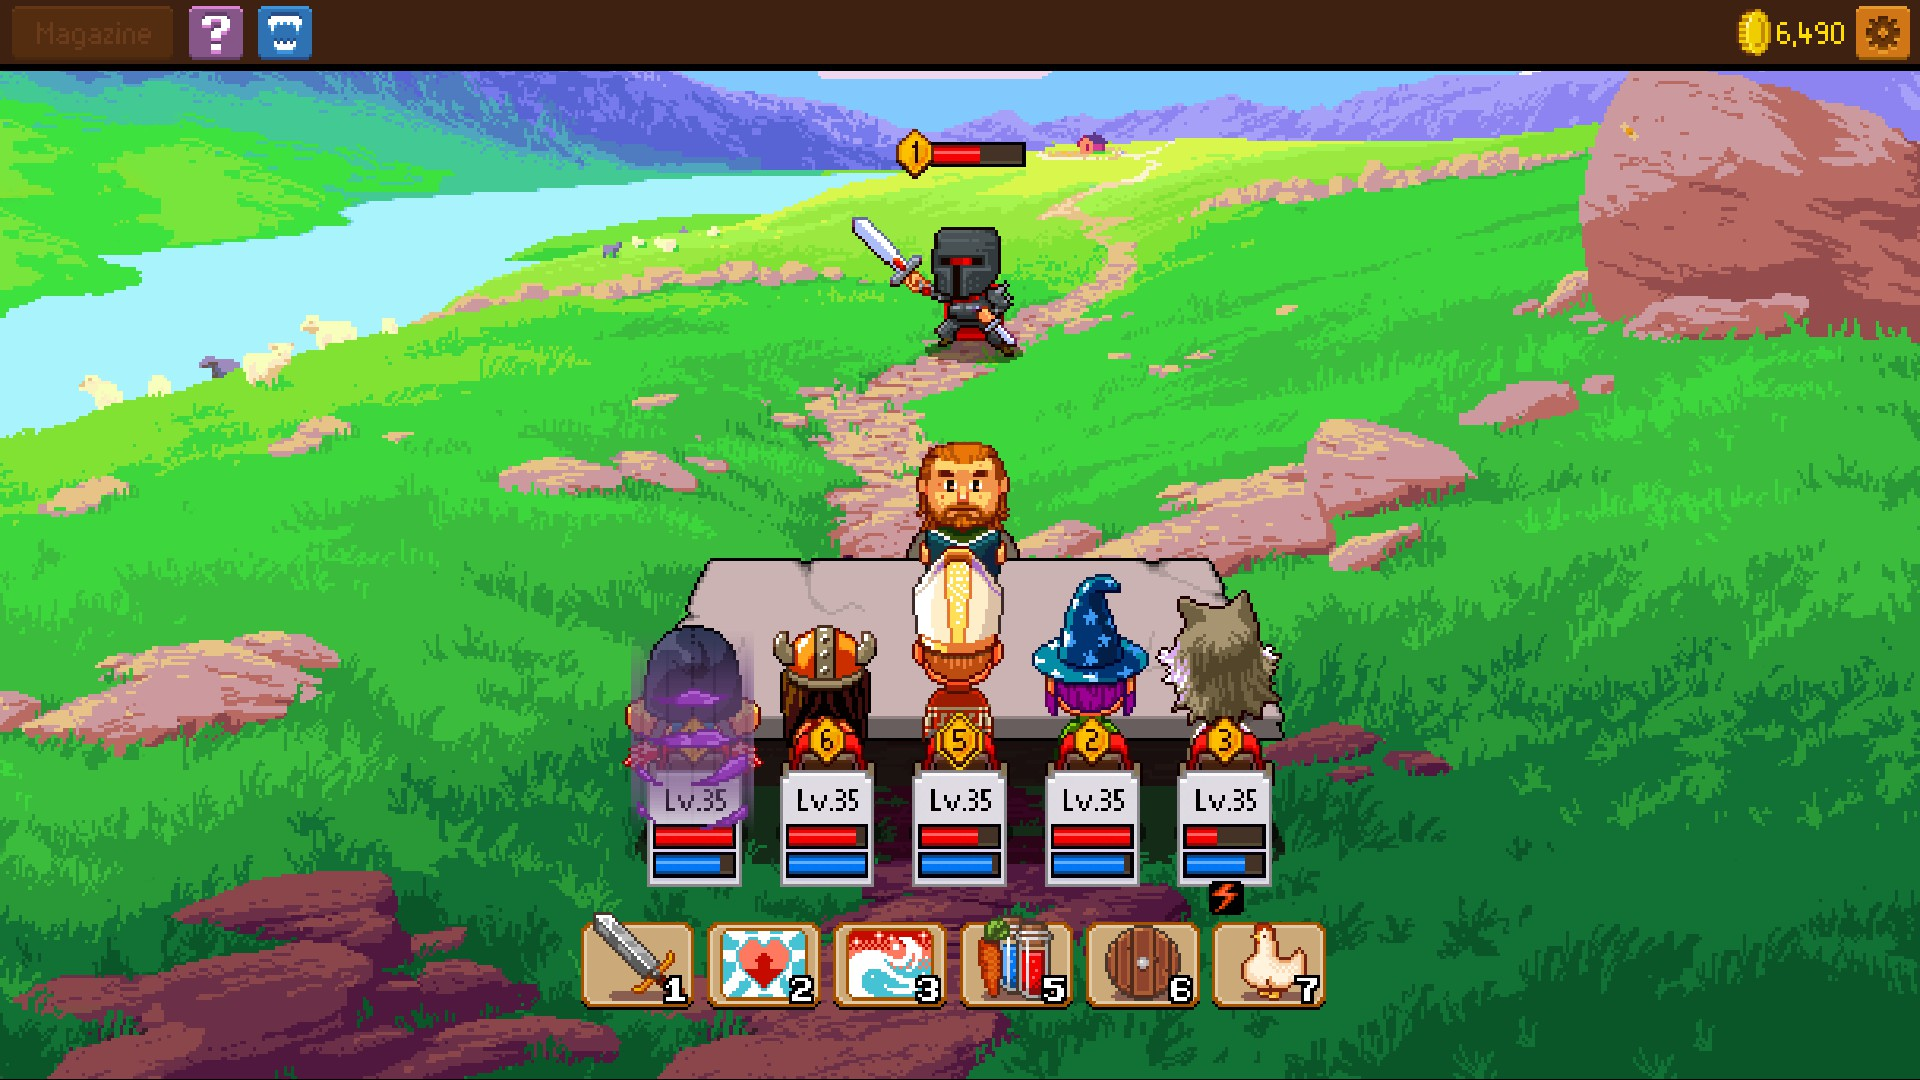 knights of pen and paper 2 apk cracked